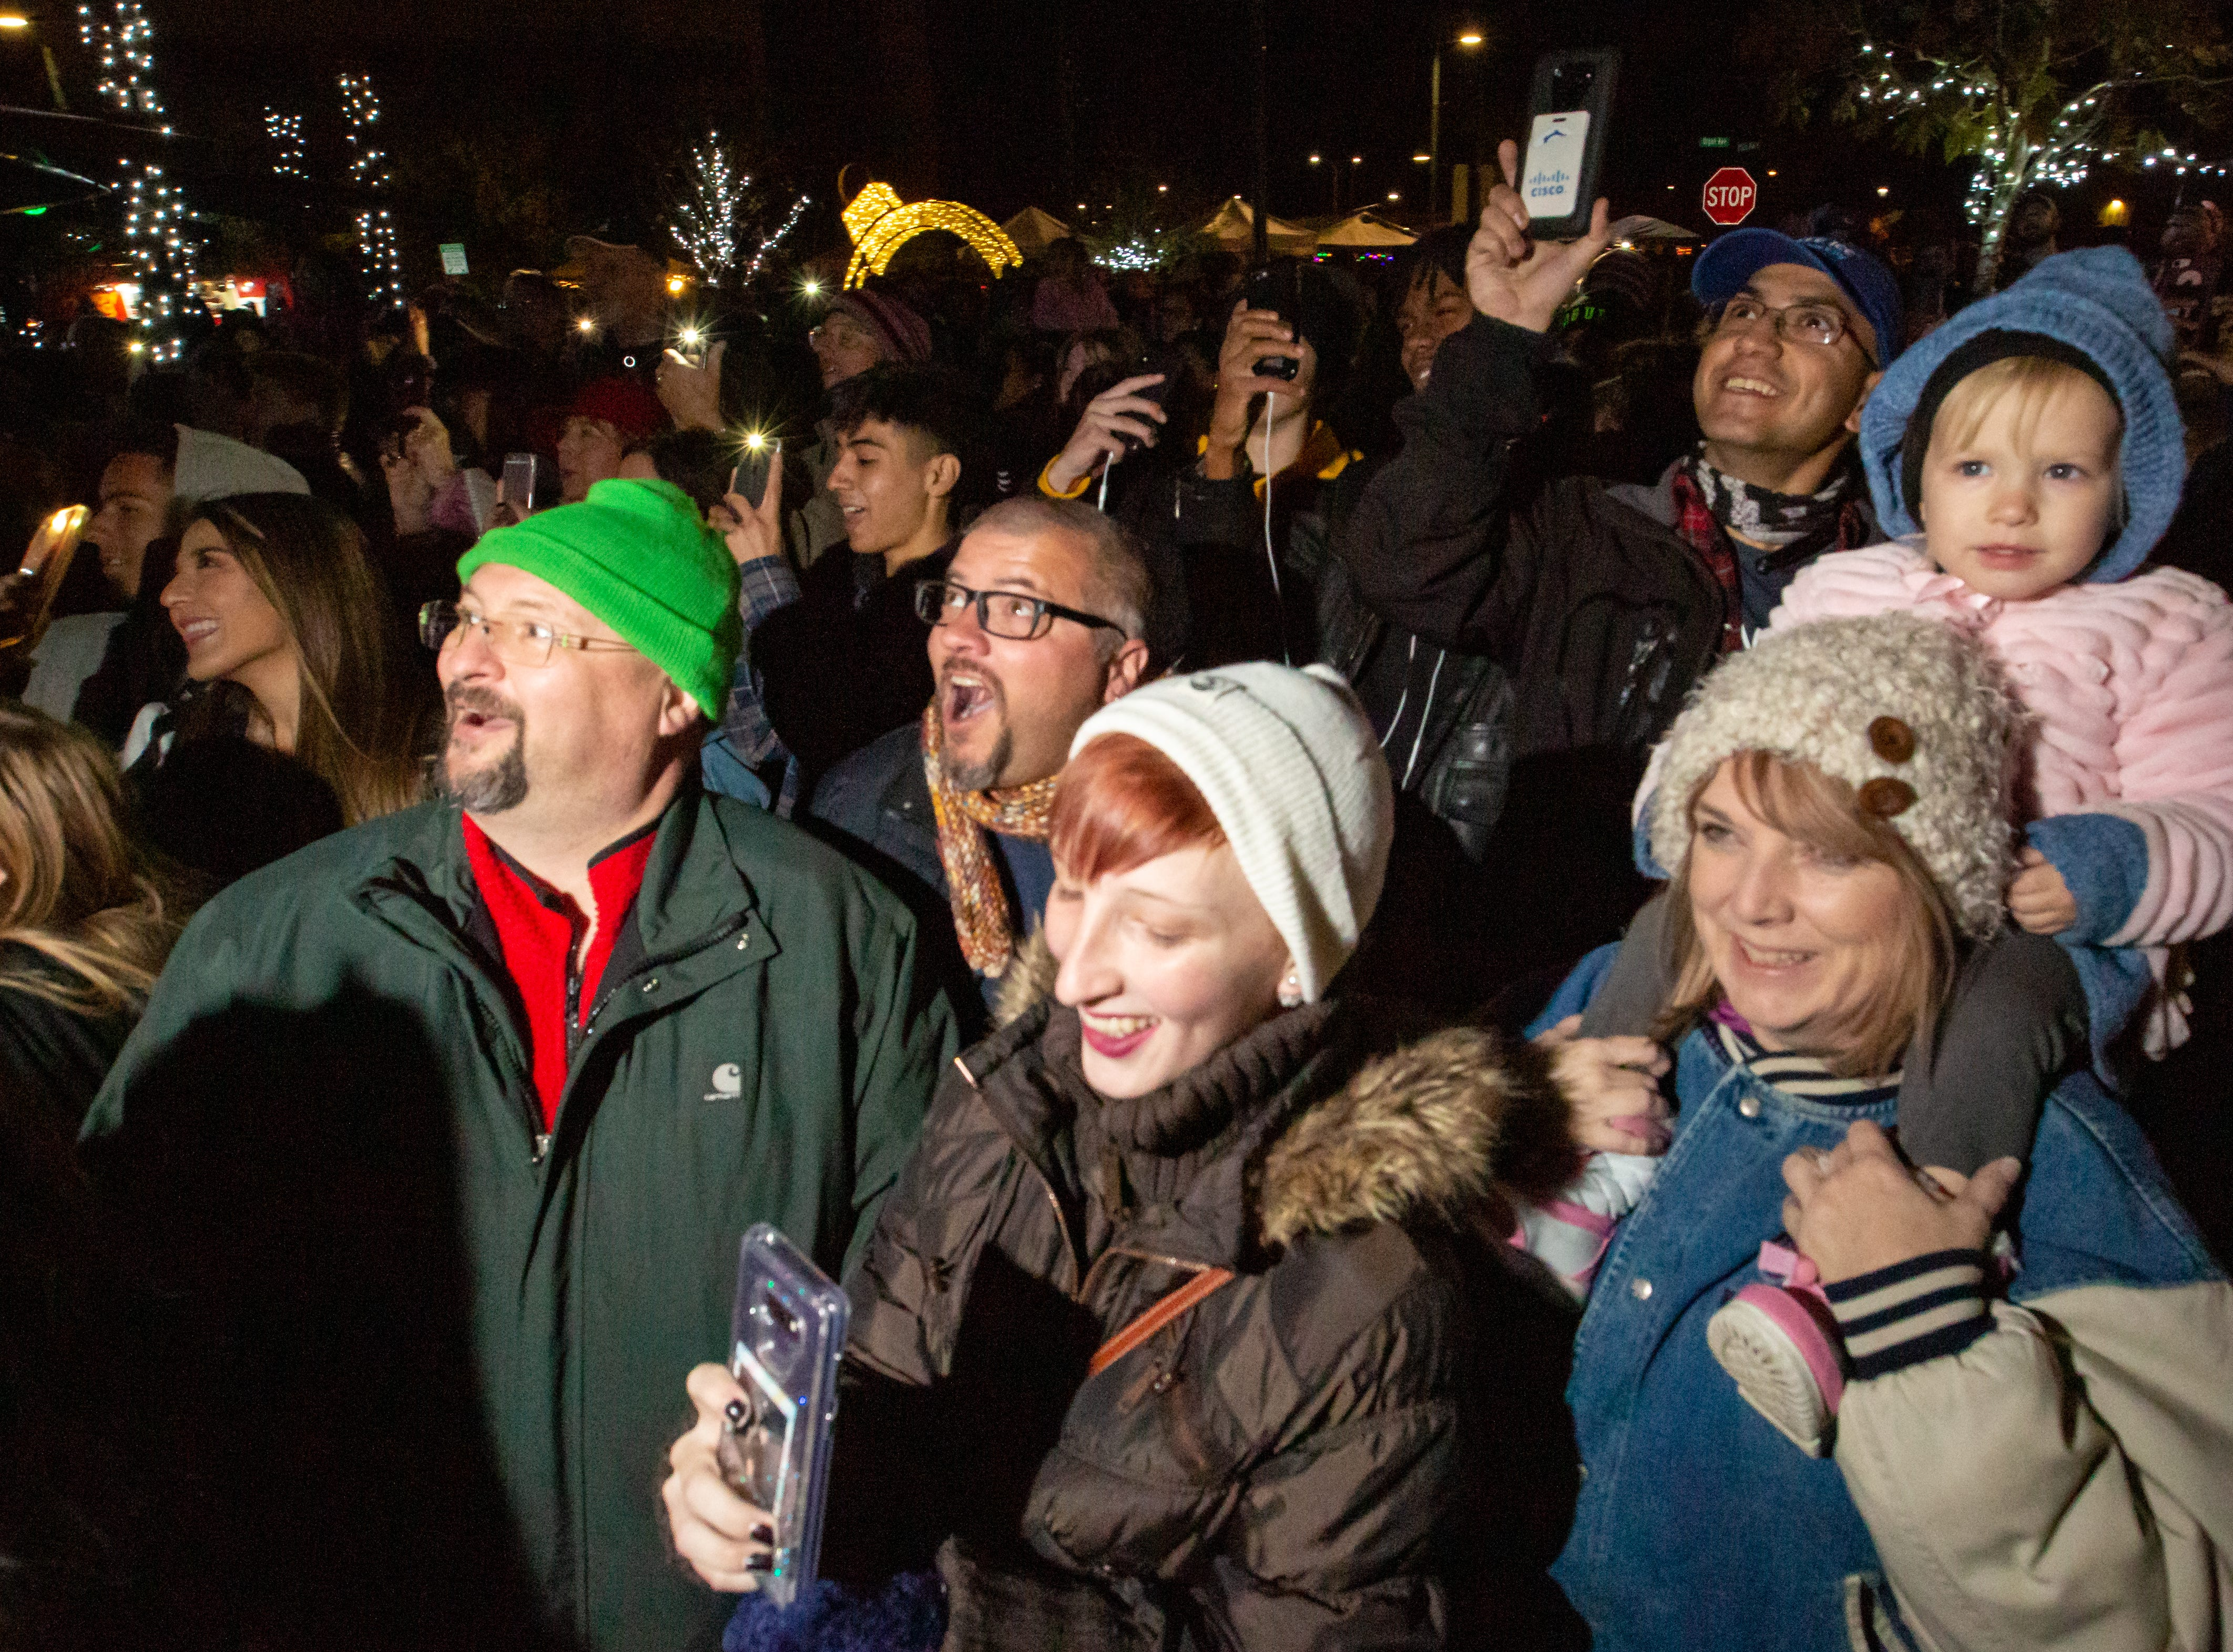 The crowd reacts as the lights atop the tree are turned on during The Christmas in Cruces Tree Lighting Extravaganza on Saturday, Dec. 1, 2018.